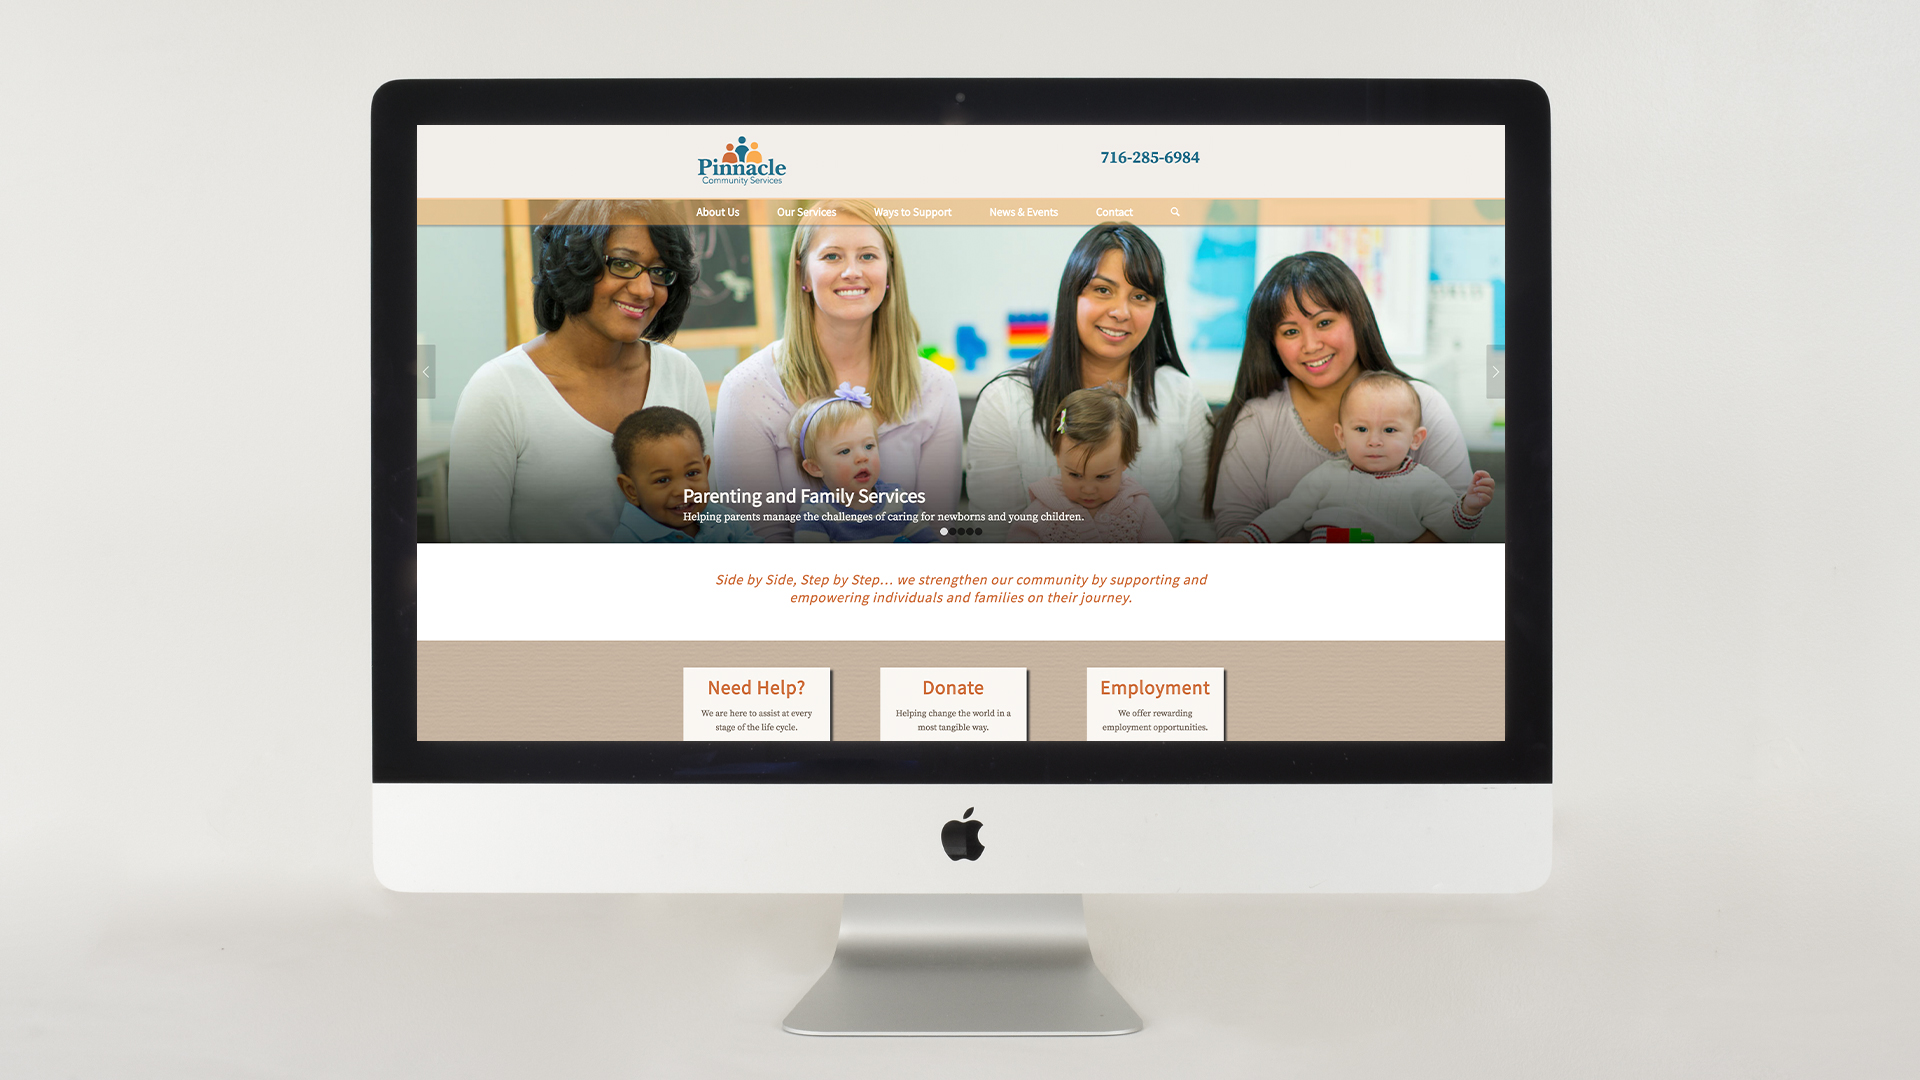 Website re-design for a community services organization in Niagara Falls NY